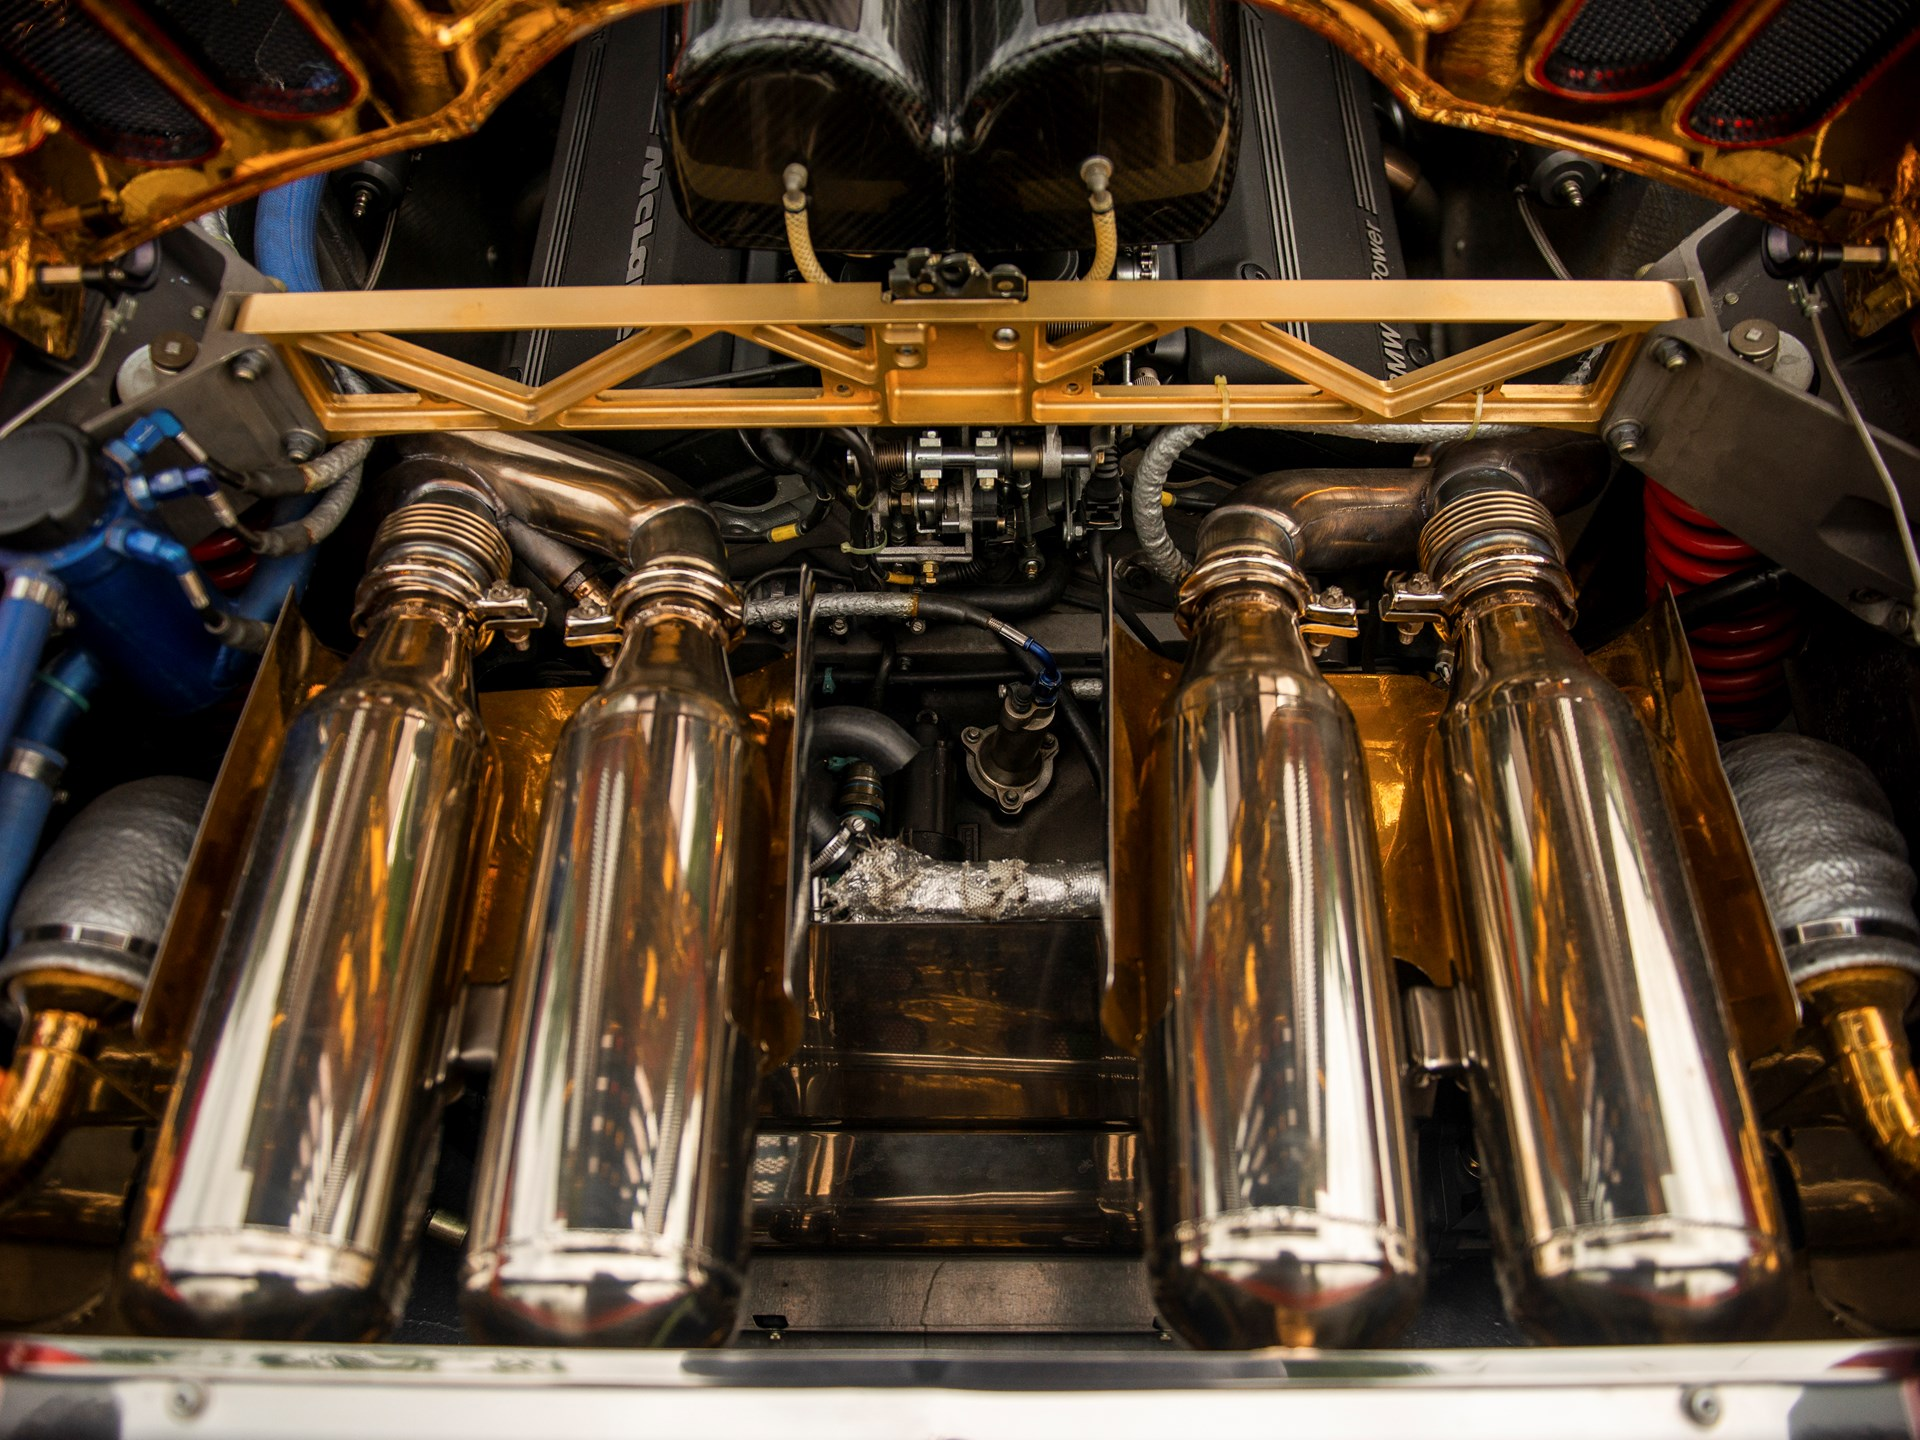 1998 McLaren F1 'LM-Specification'